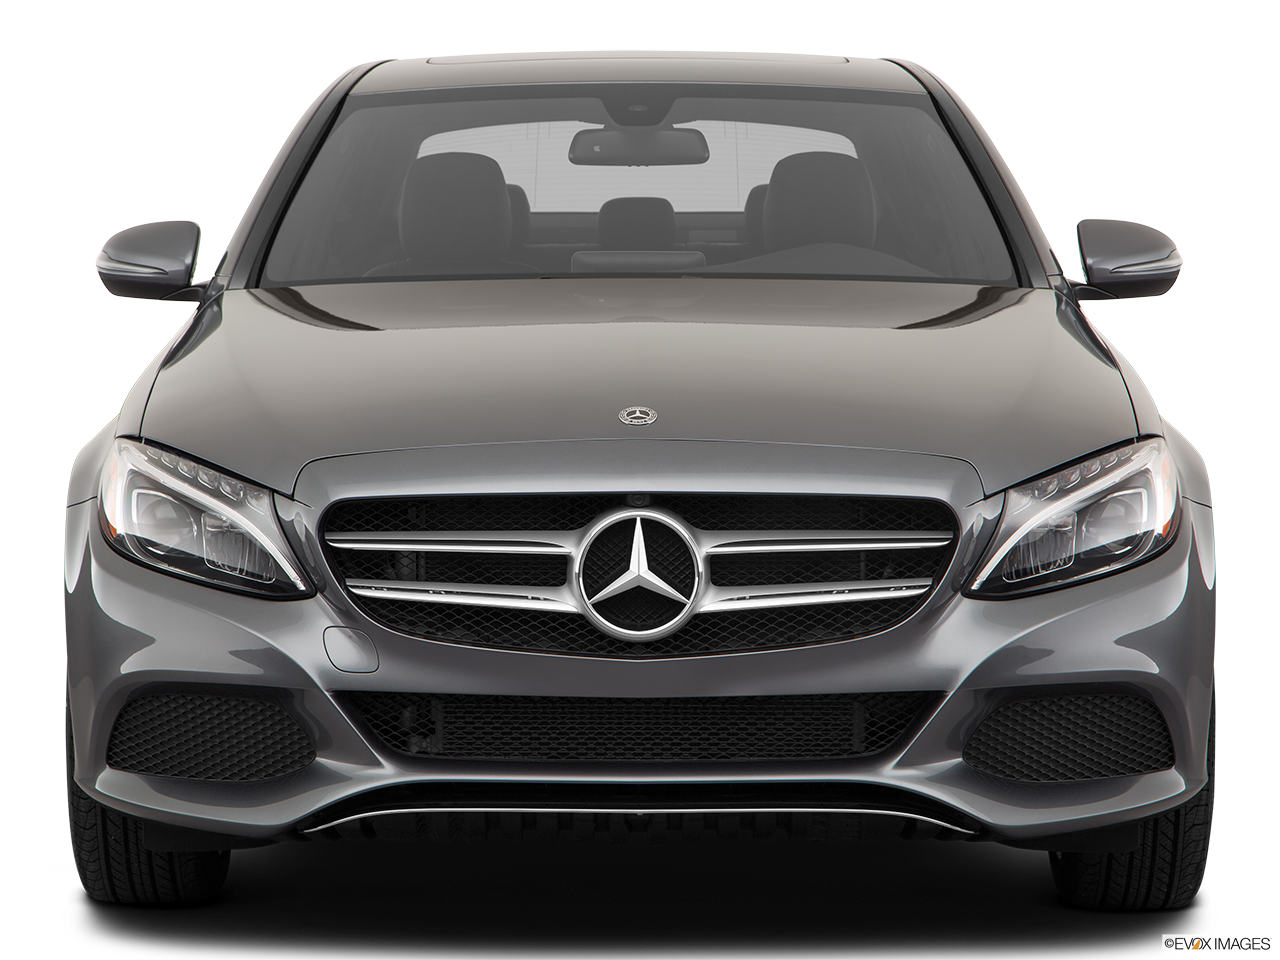 Front view of the Mercedes-Benz C350e